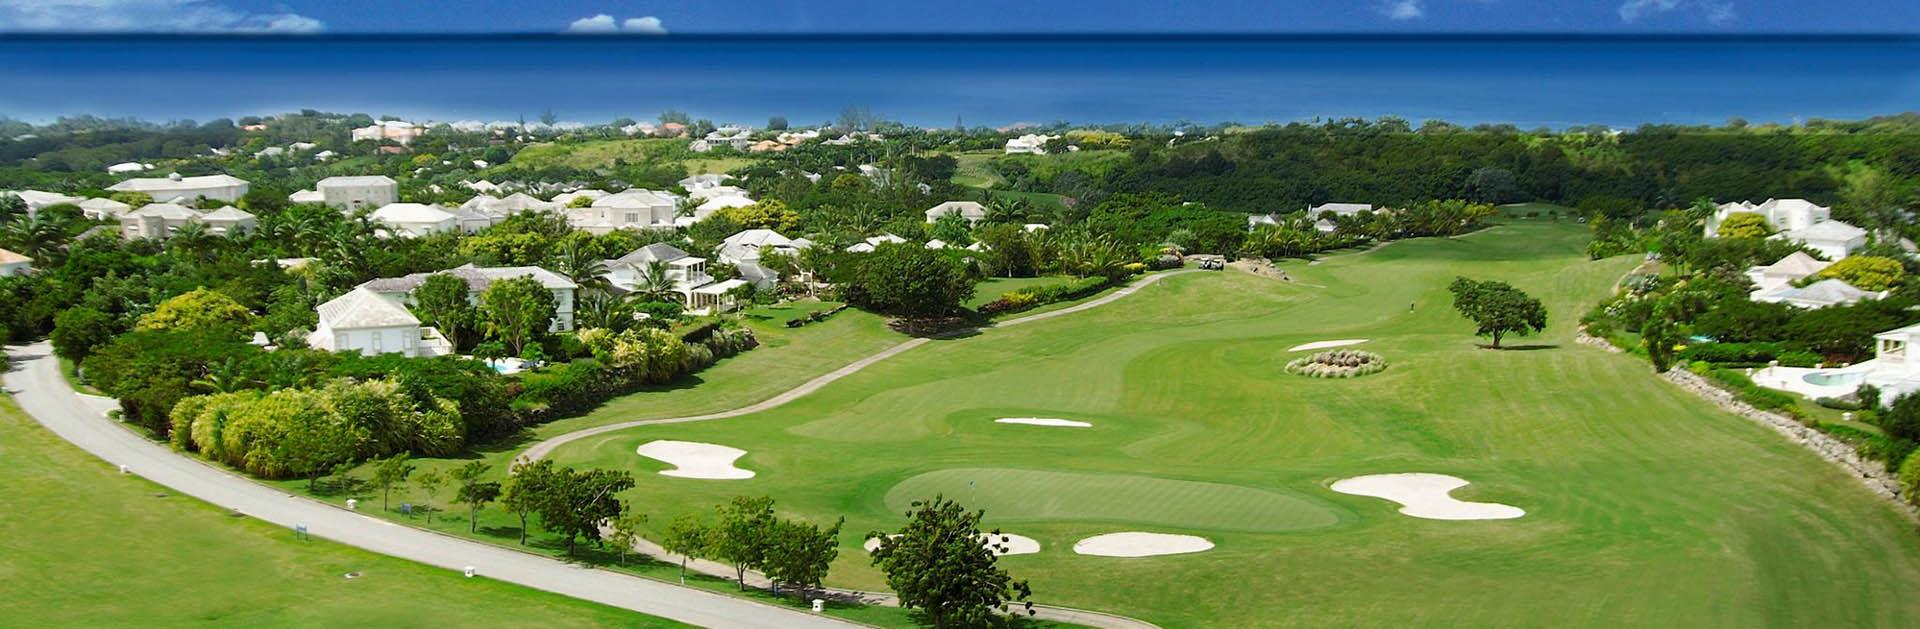 Sir Garry Sobers Golf Tournament 2016